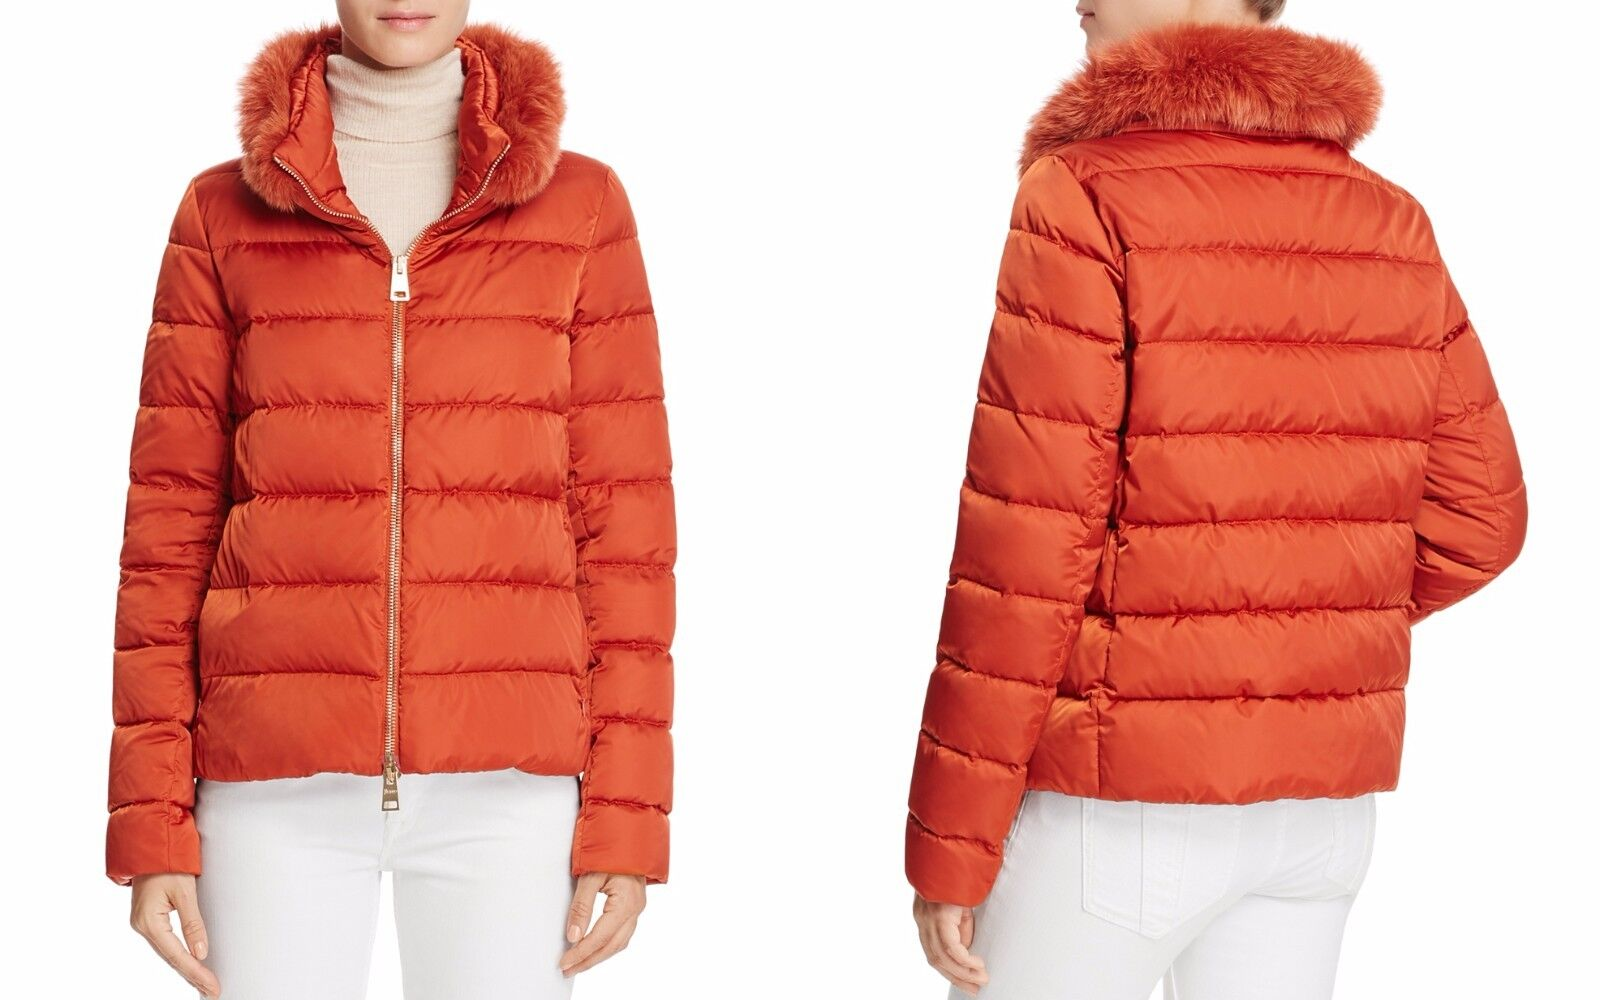 Herno Short Satin Down Puffer Puffer Puffer Coat Small orange Defect Missing Fur MSRP  865 c3e852